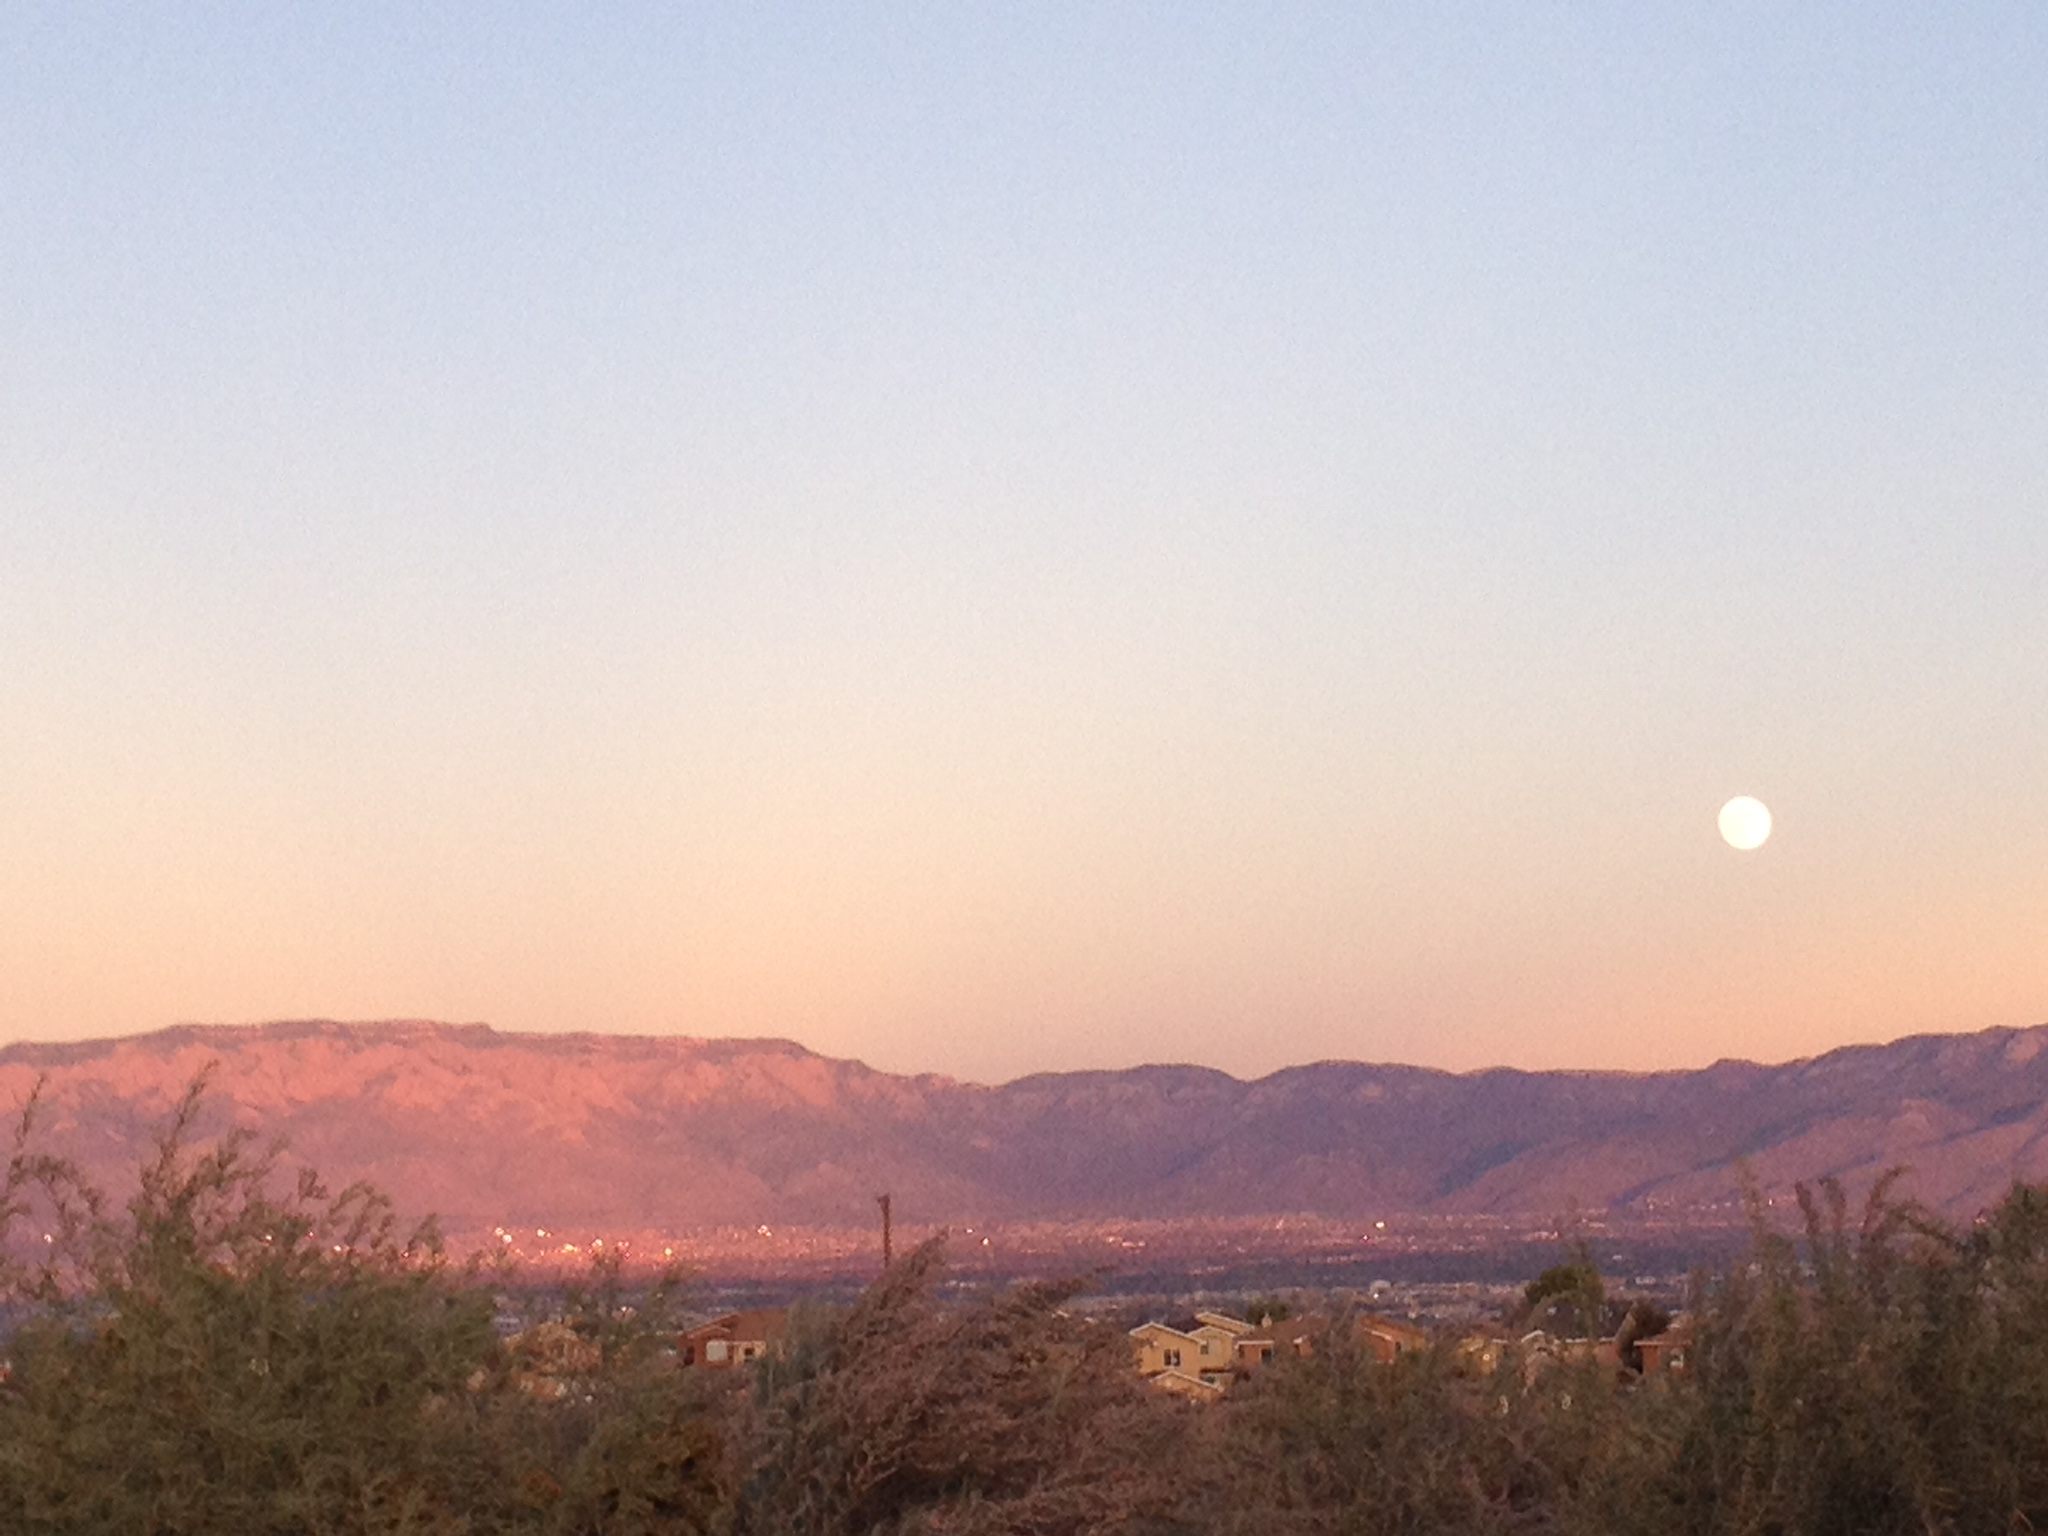 Moonrise over Albuquerque.